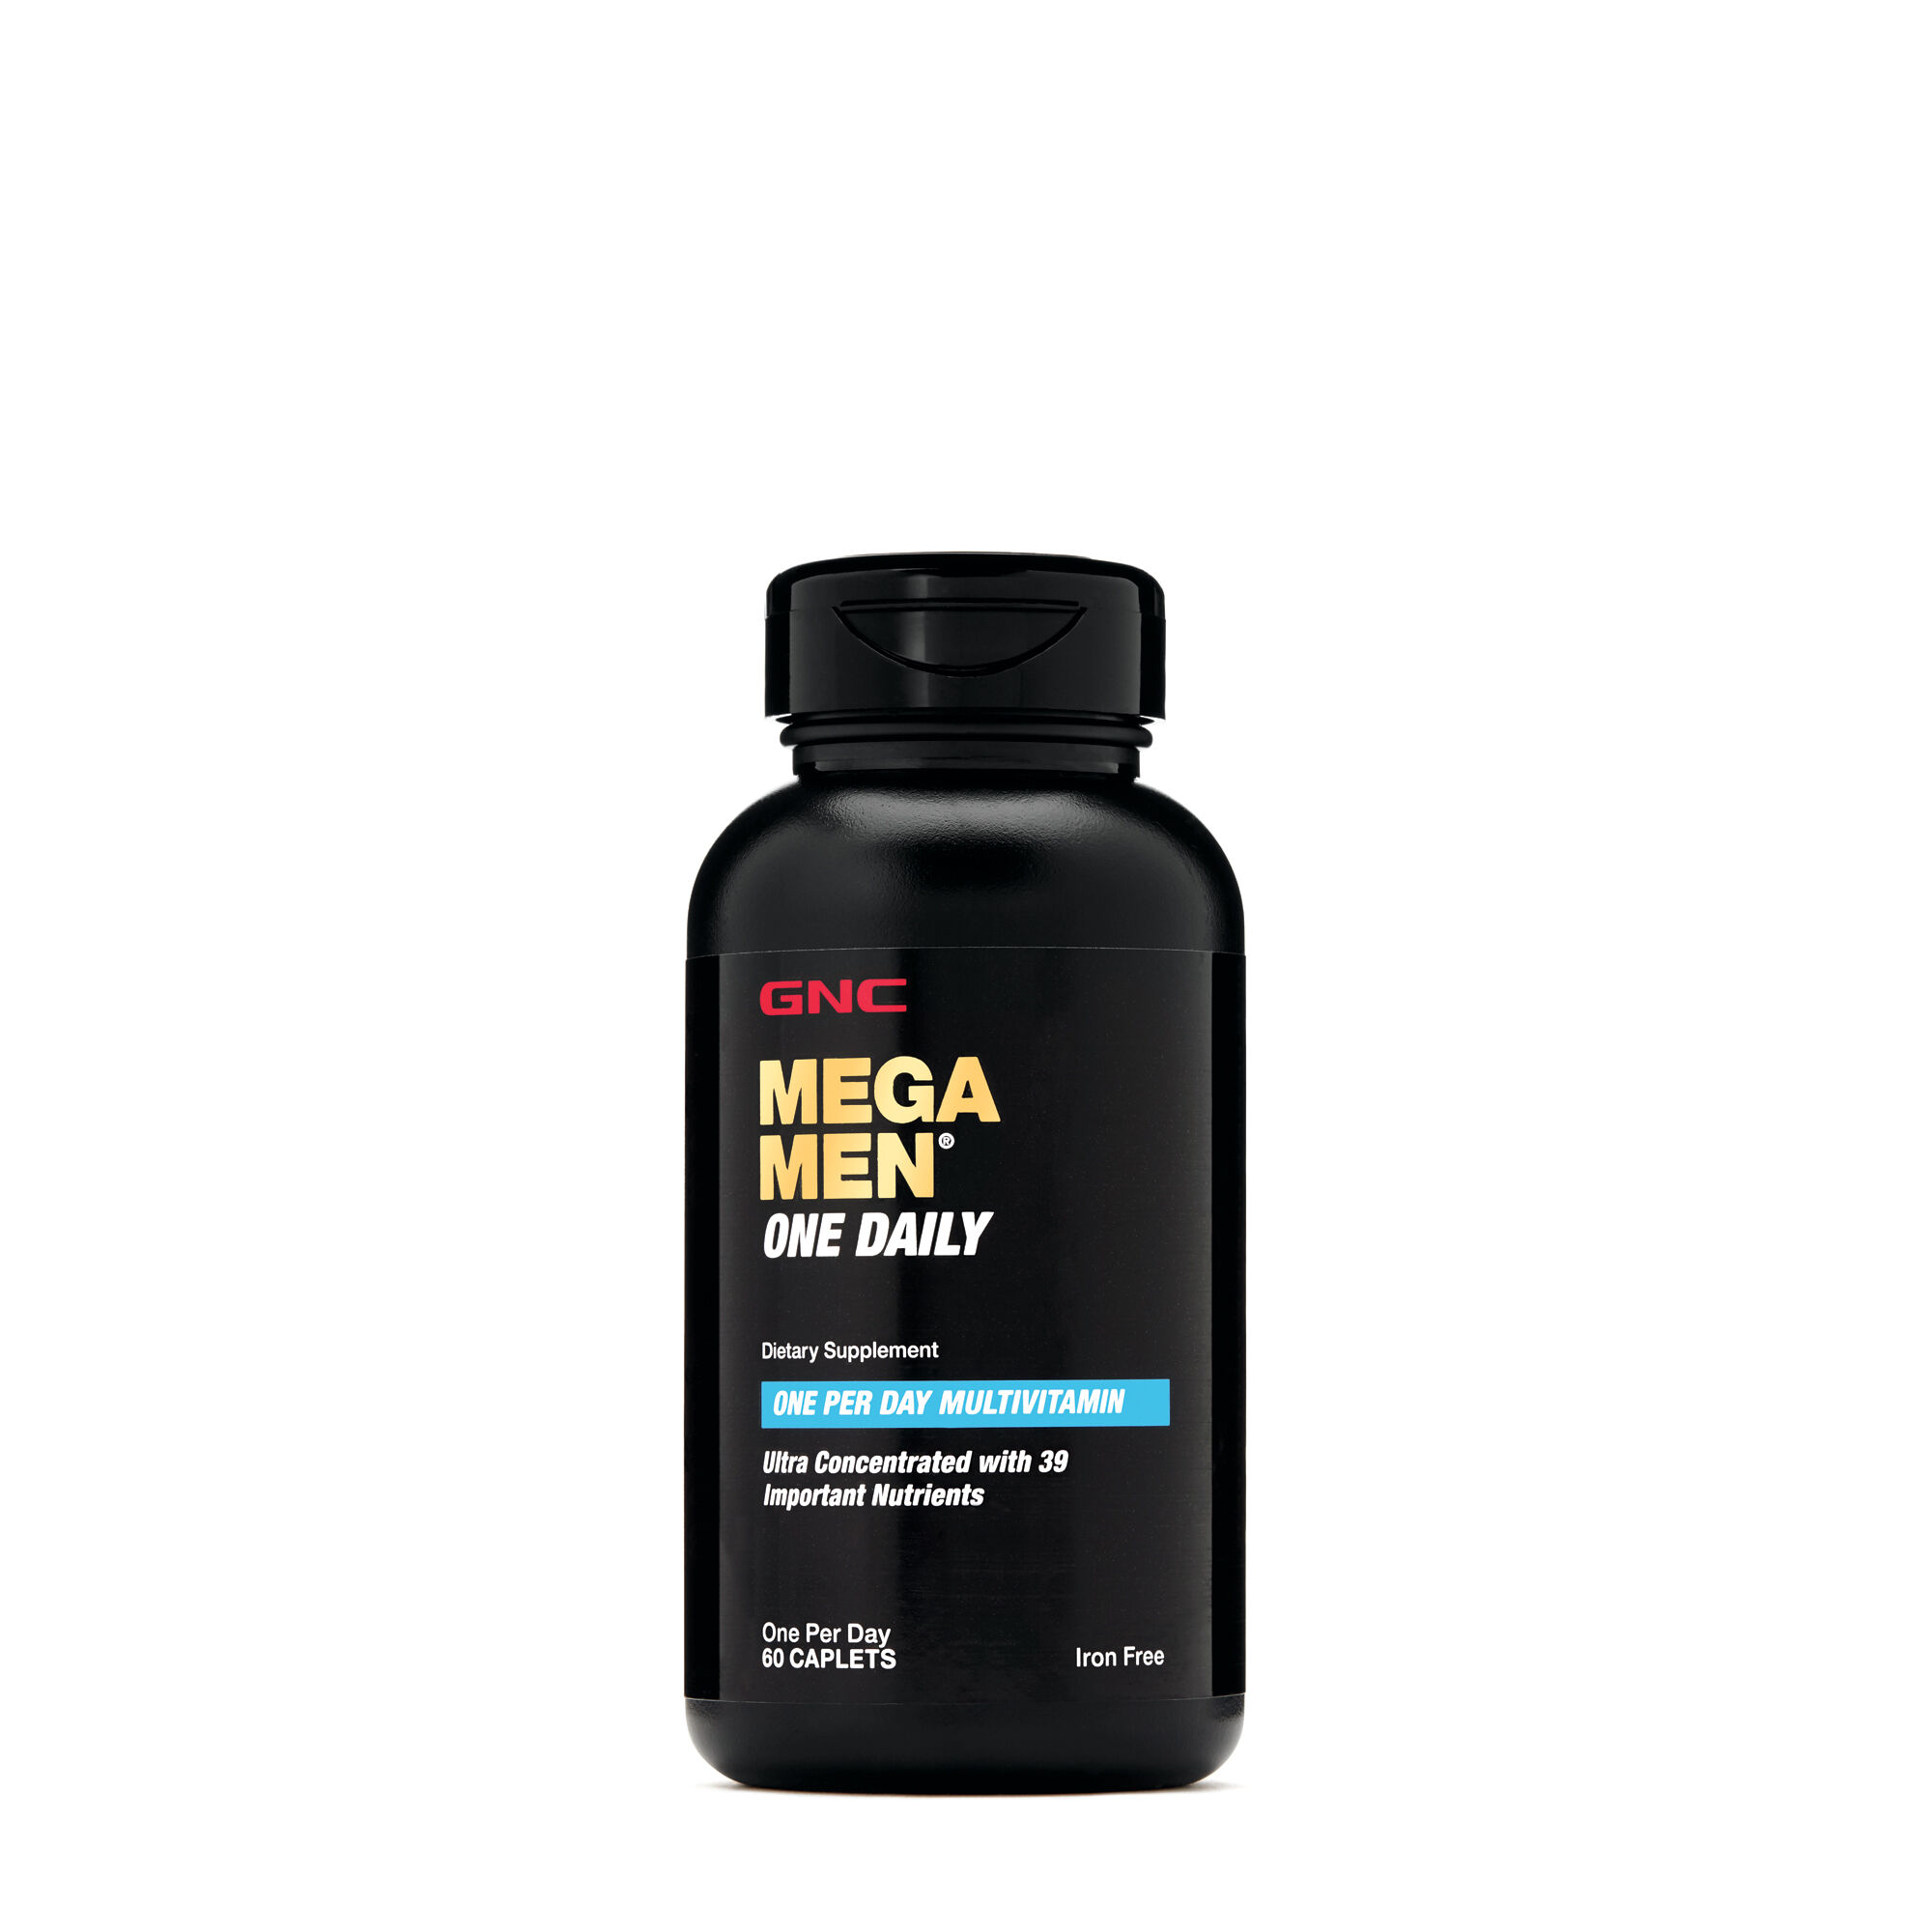 Mega Men� One Daily - 60 Caplets - GNC - Mega Men Multivitamins